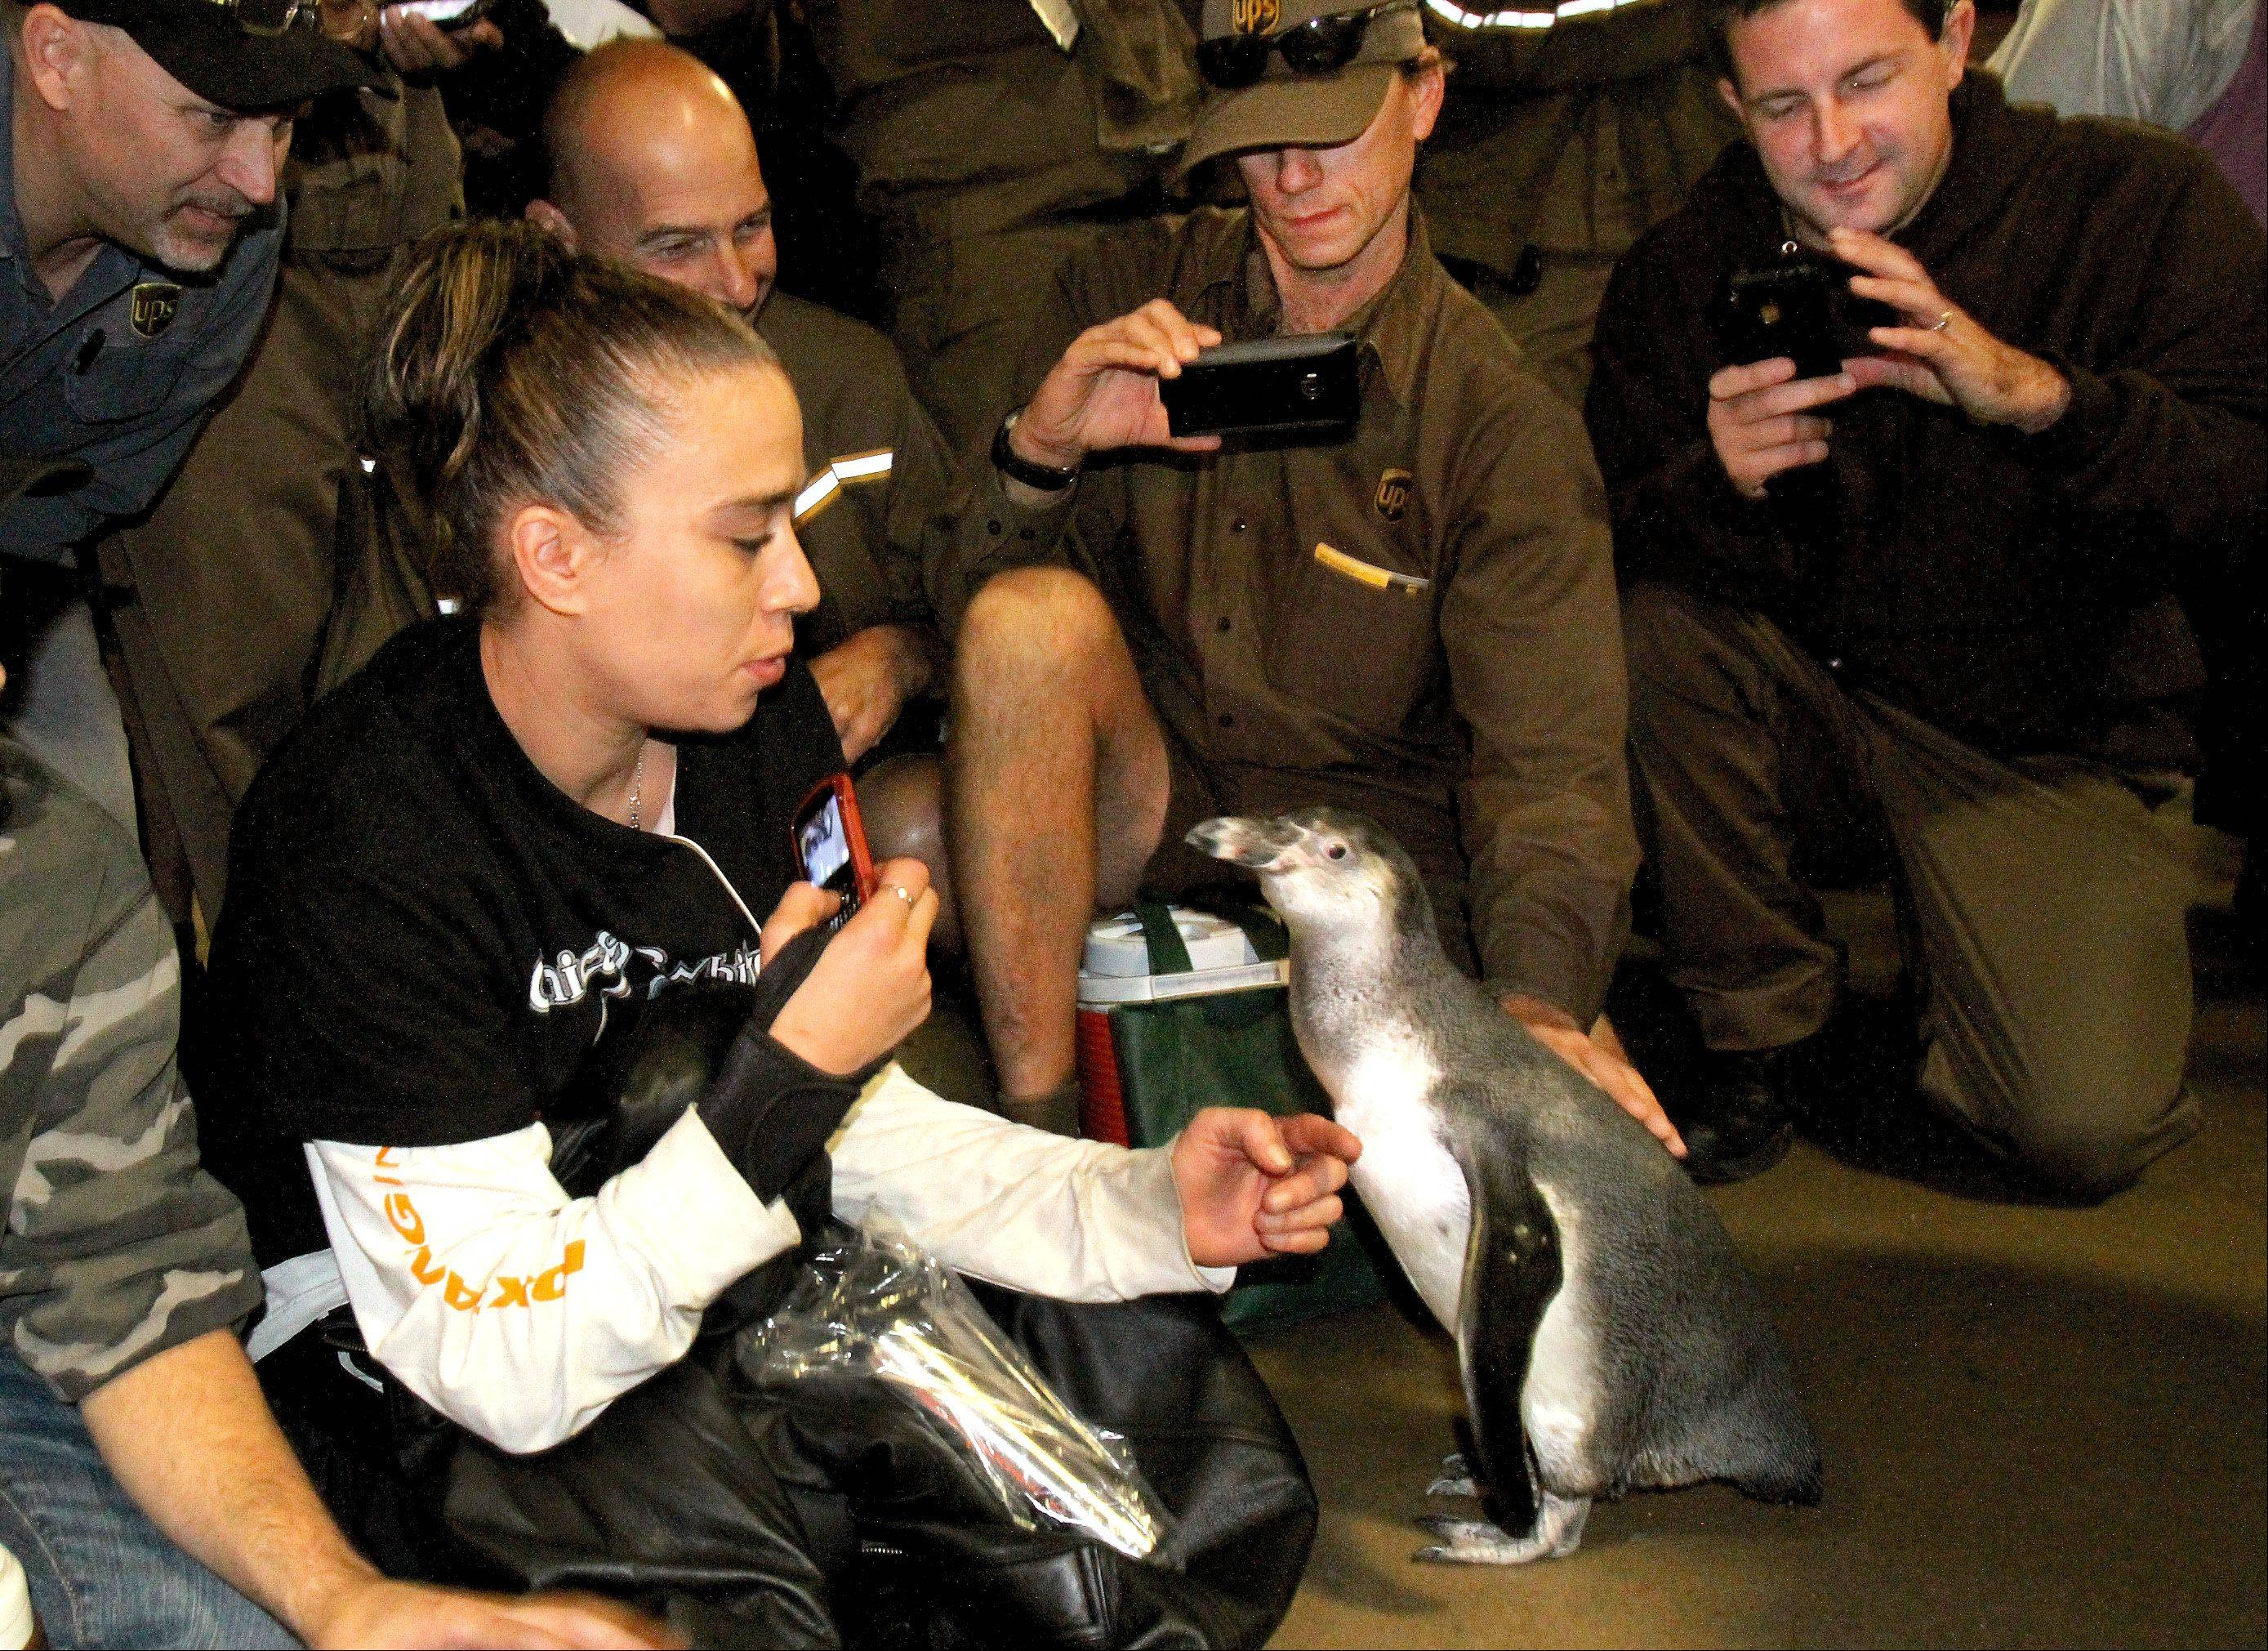 Pepe, a 6-month-old Humboldt penguin from Brookfield Zoo, was a hit Thursday morning at the Addison UPS facility. His visit was part of UPS's Walk Like a Penguin campaign to help promote walking safely on the snow and ice.